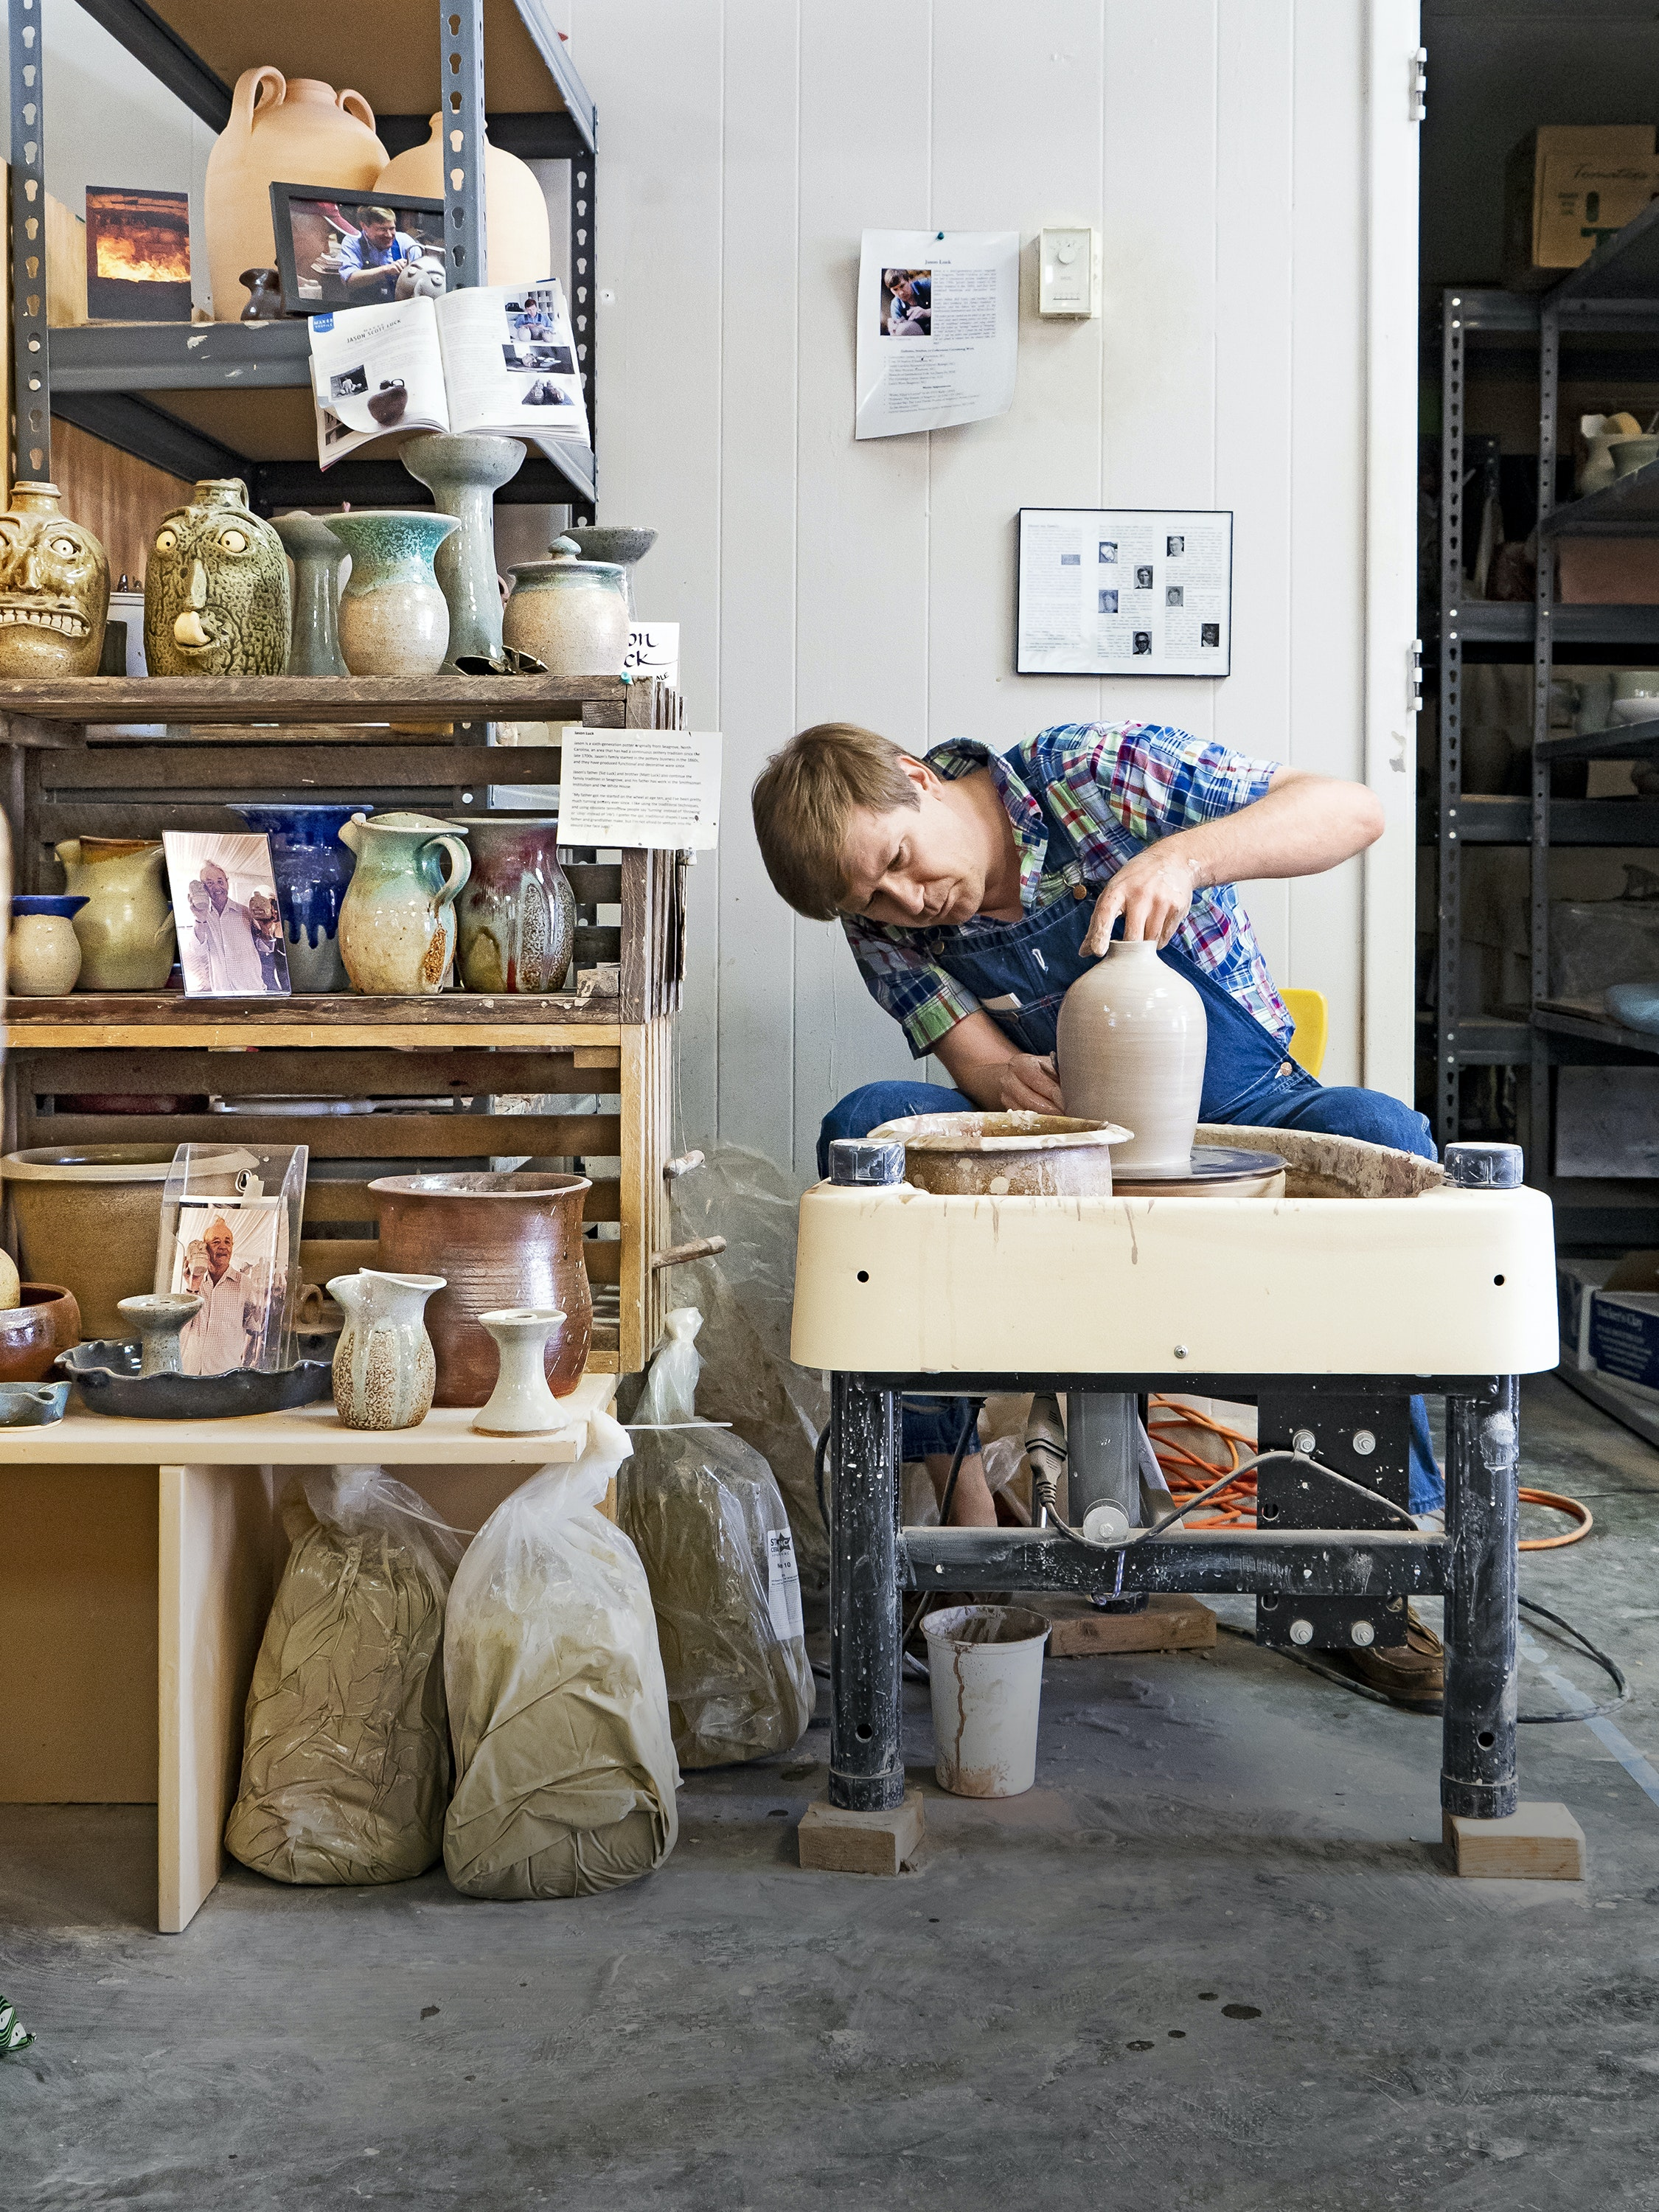 Cone 10 Studios sells pottery made by local ceramists and offers workshops throughout the year.